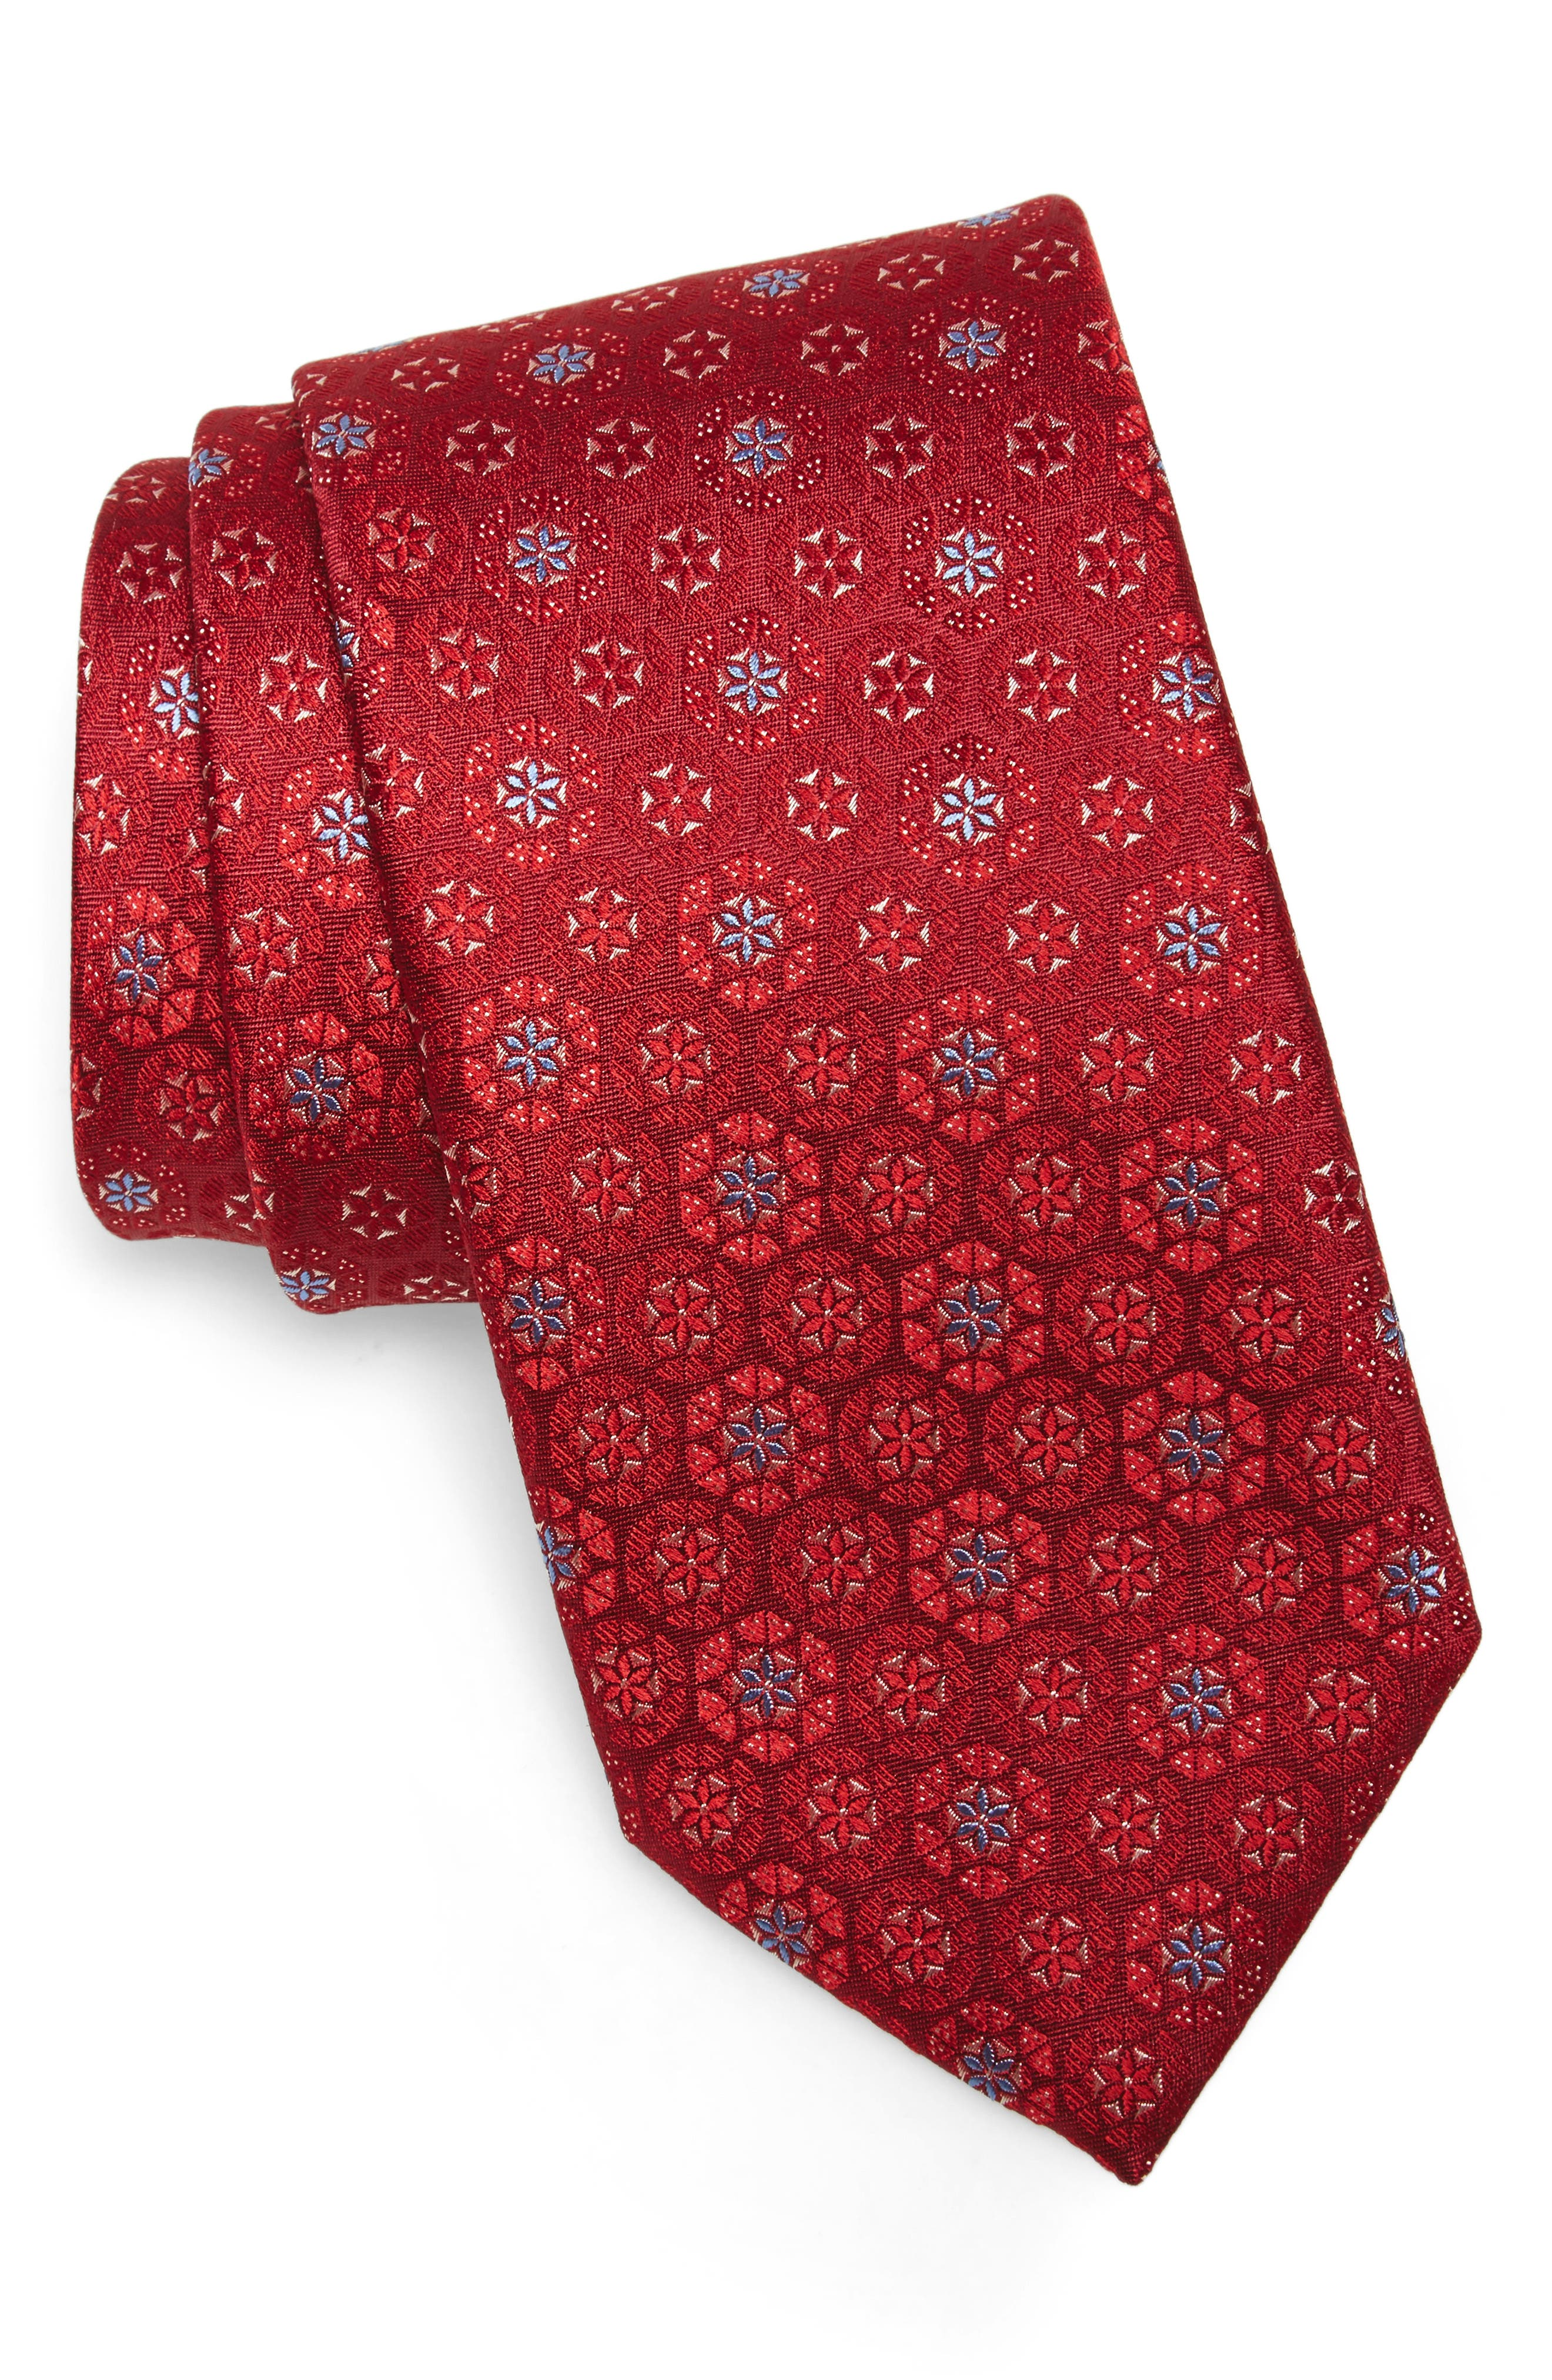 Medallion Silk Tie,                         Main,                         color,